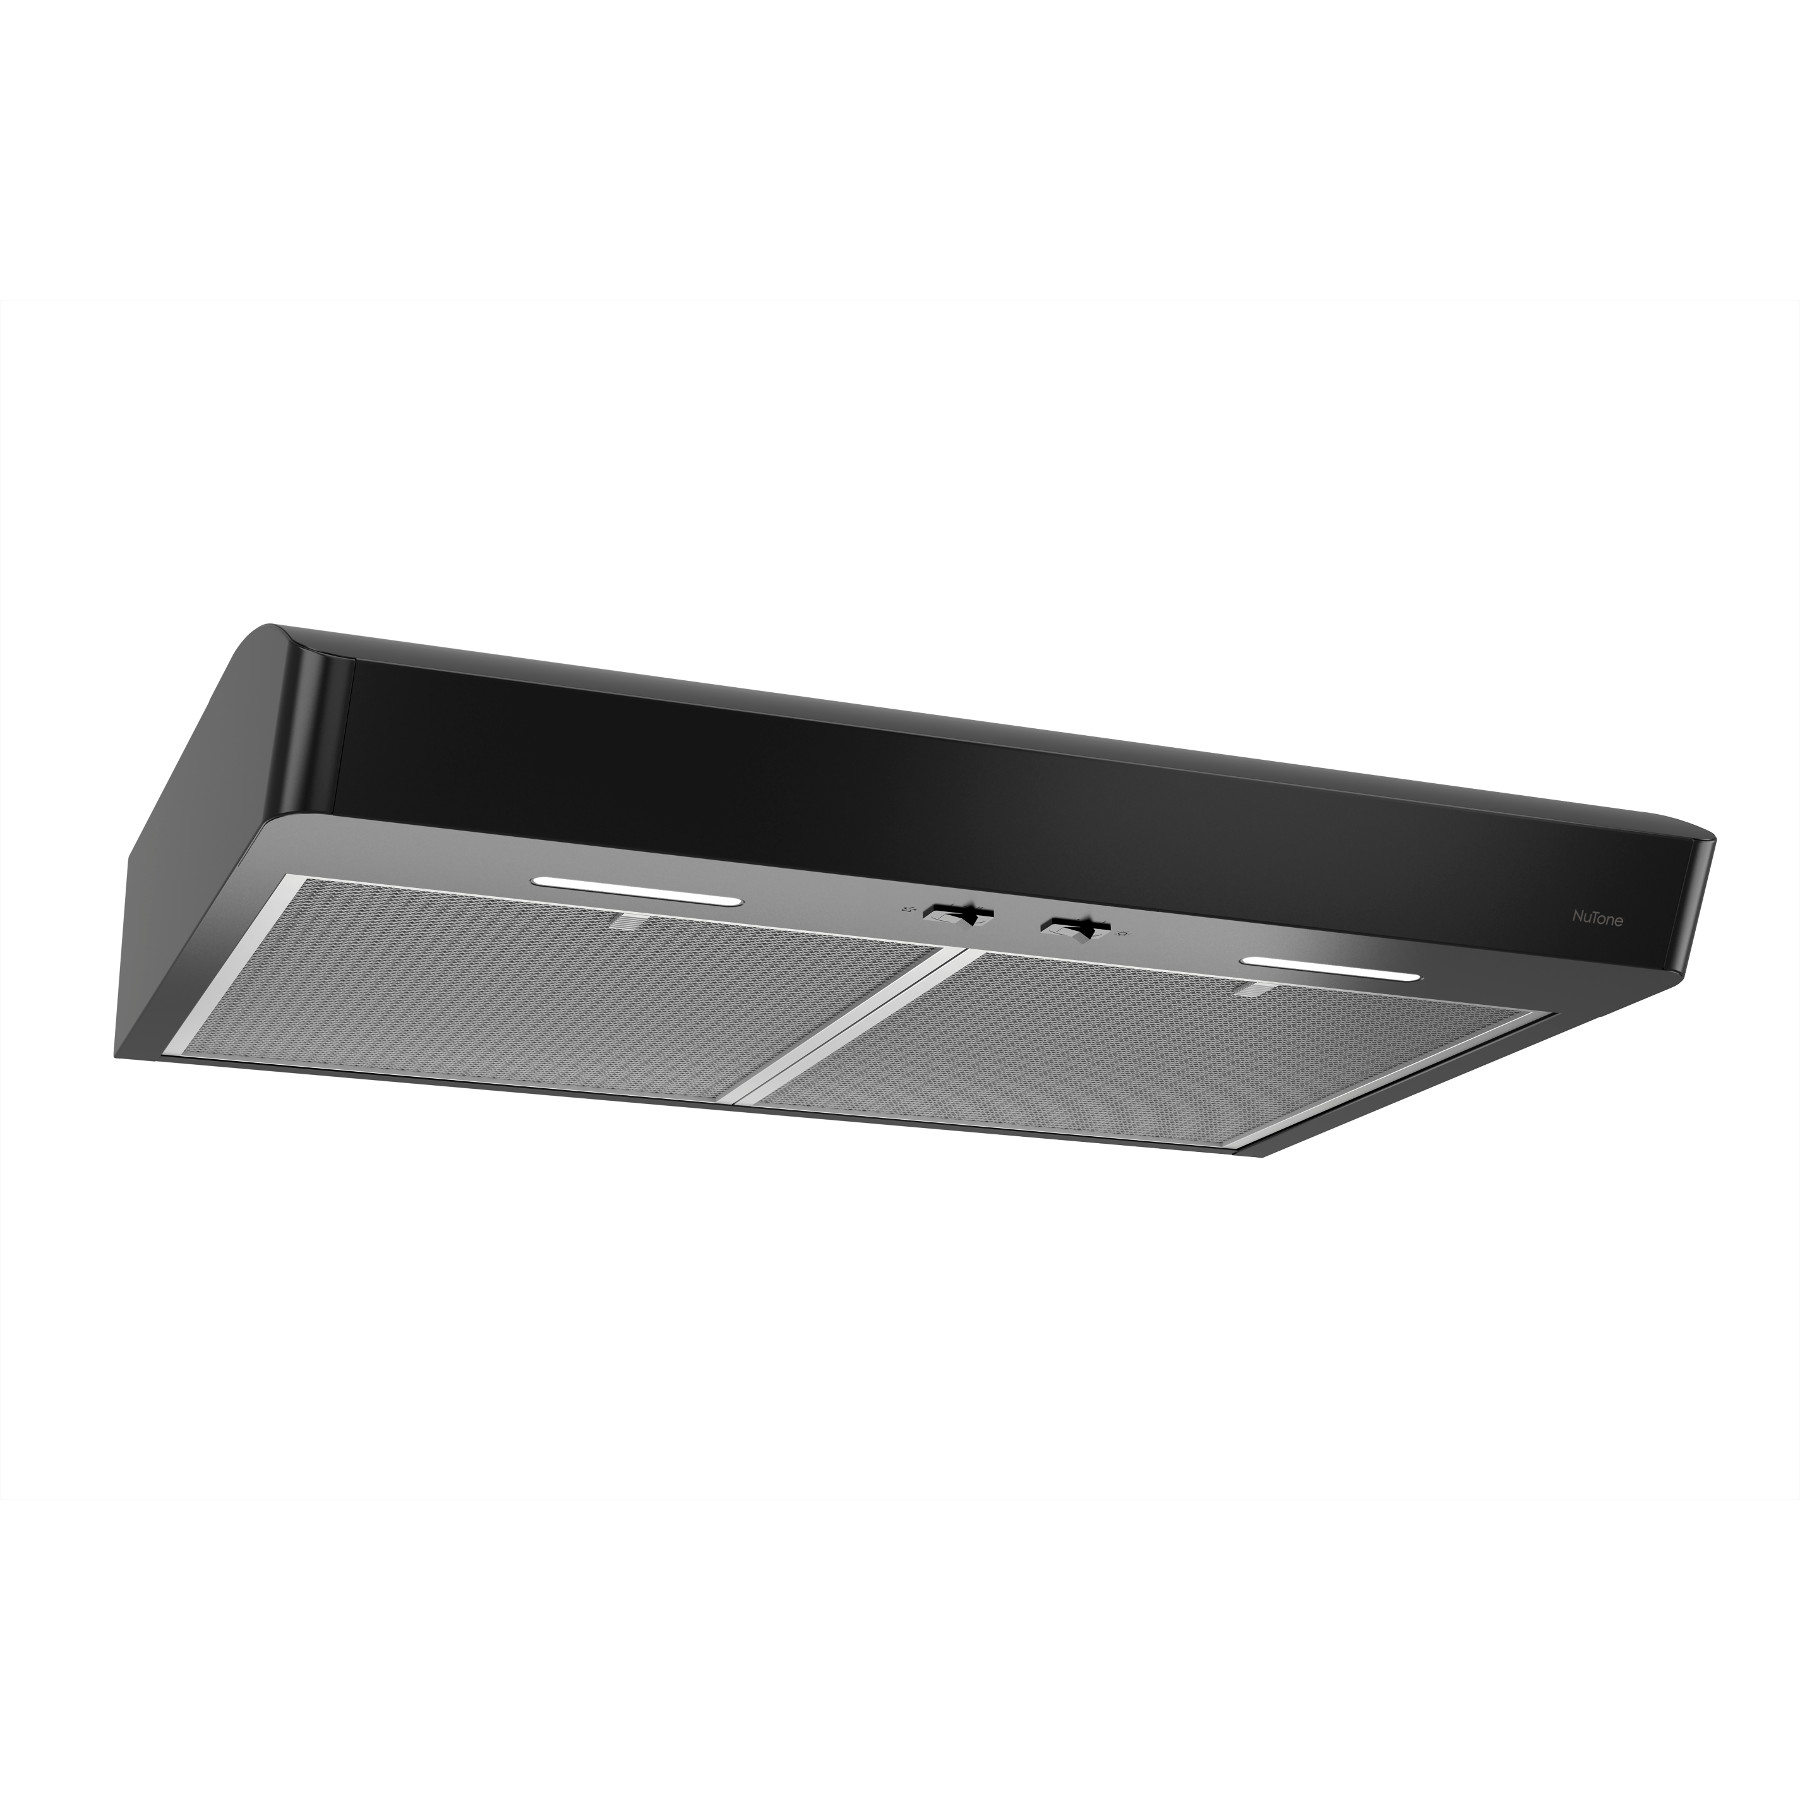 Mantra 30-Inch Convertible Under-Cabinet Range Hood, 300 CFM, Black